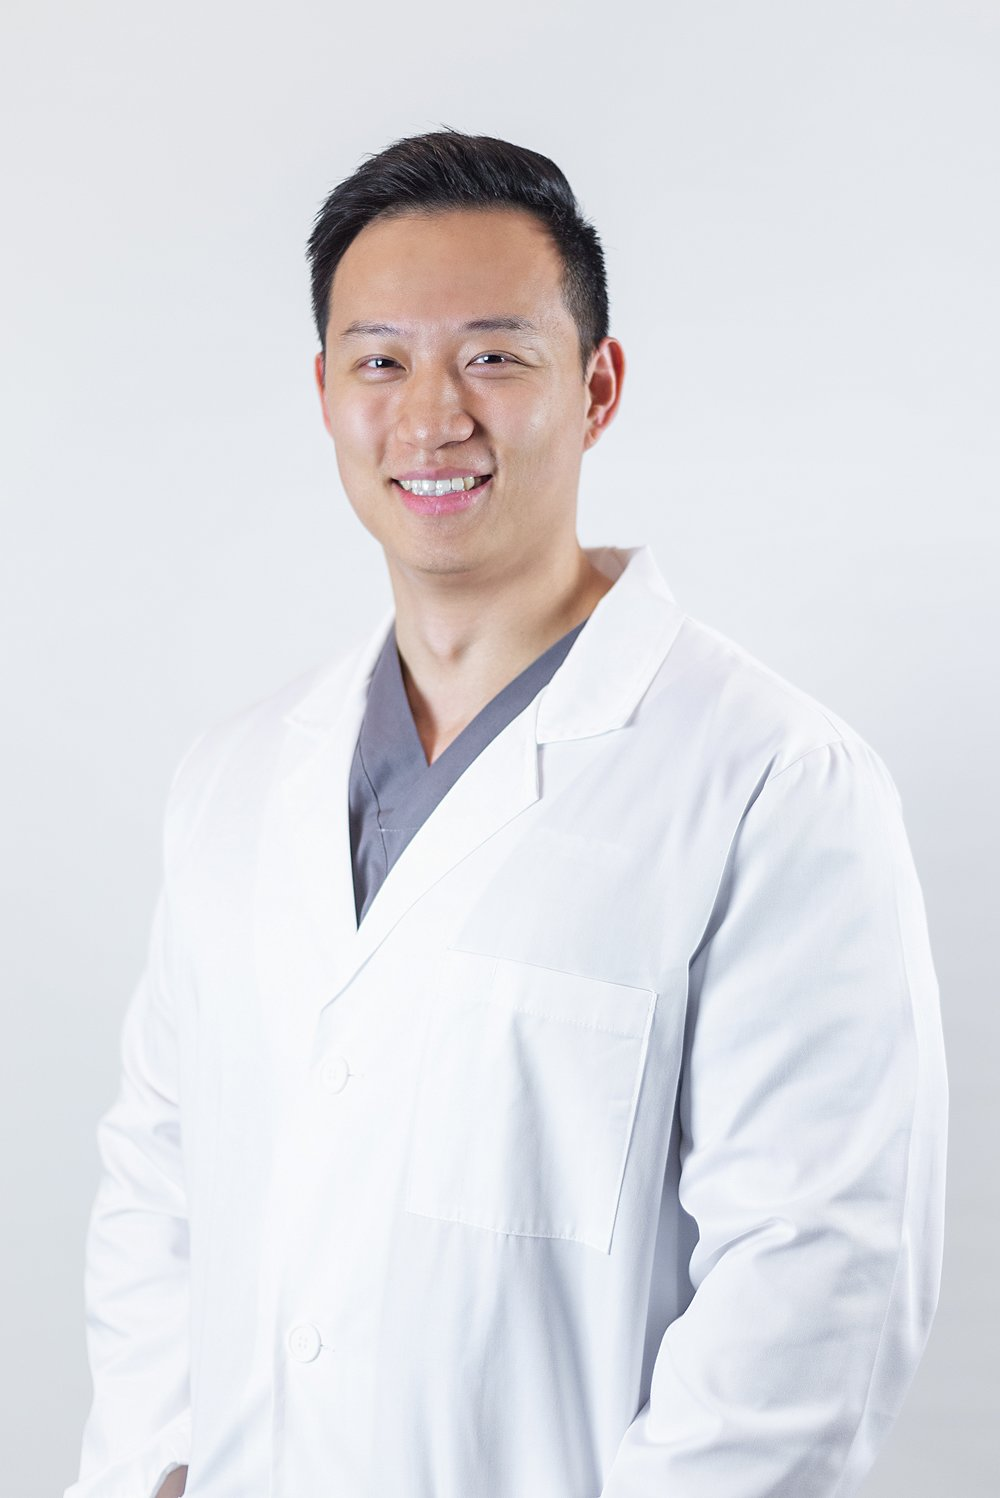 Meet Dr. Nick Yeung at 8 to 8 Dental Care.